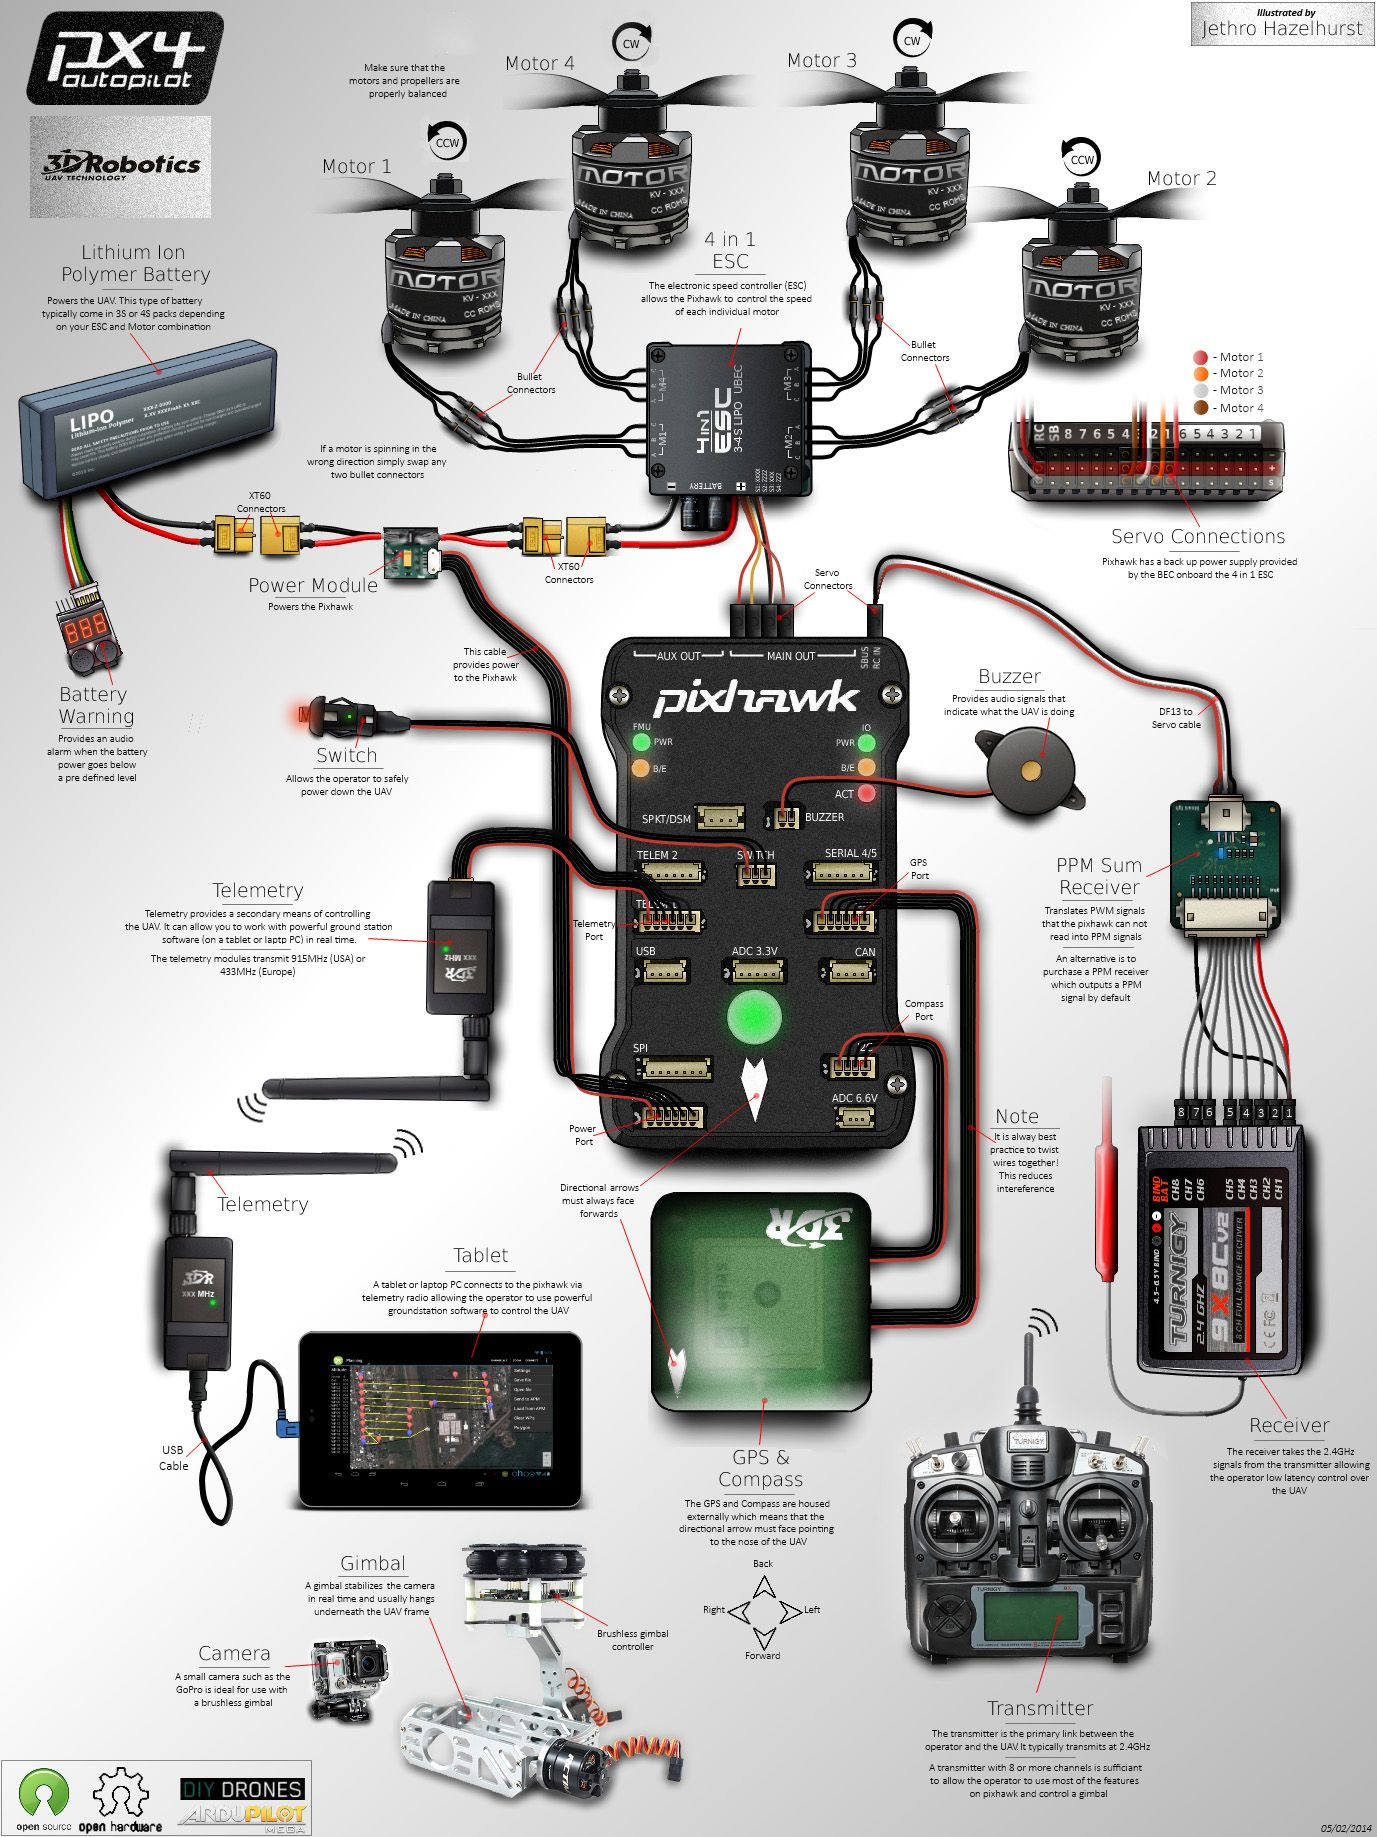 Advanced Pixhawk Quadcopter Wiring Chart | ArduCopter | Drones ...